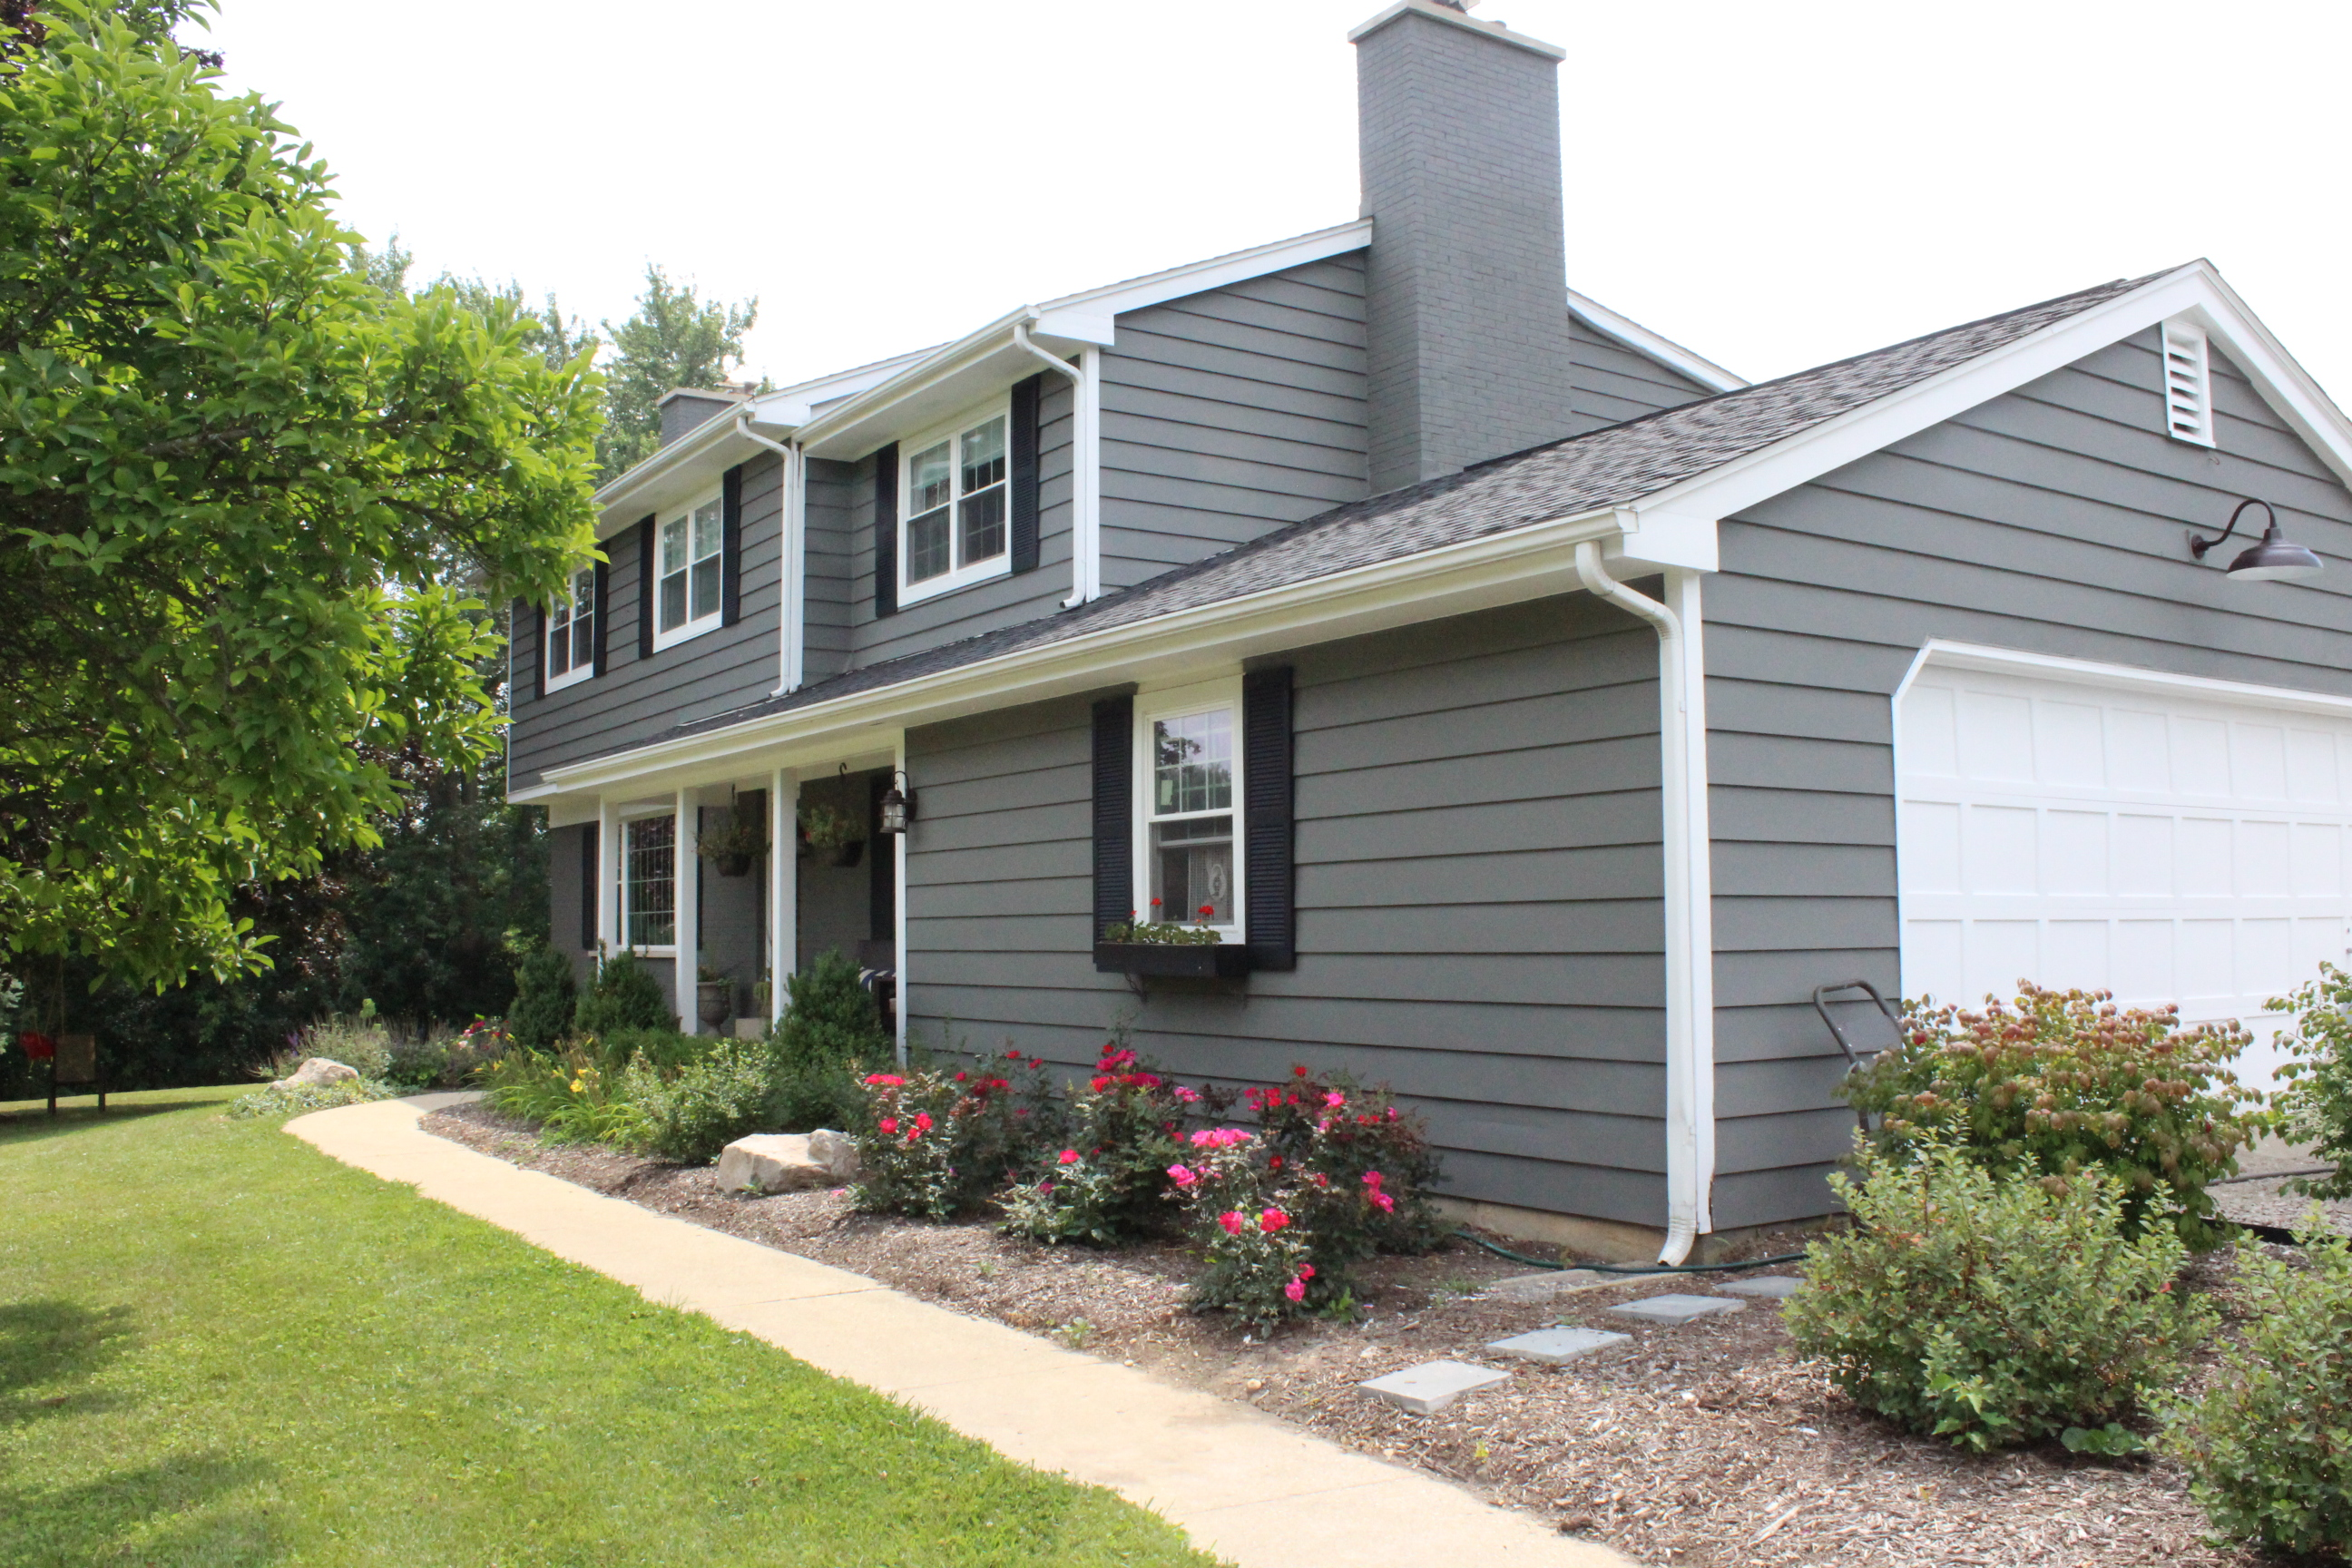 Average Cost To Paint The Exterior Of Your Home How Much Does It Cost To Paint The Exterior Of